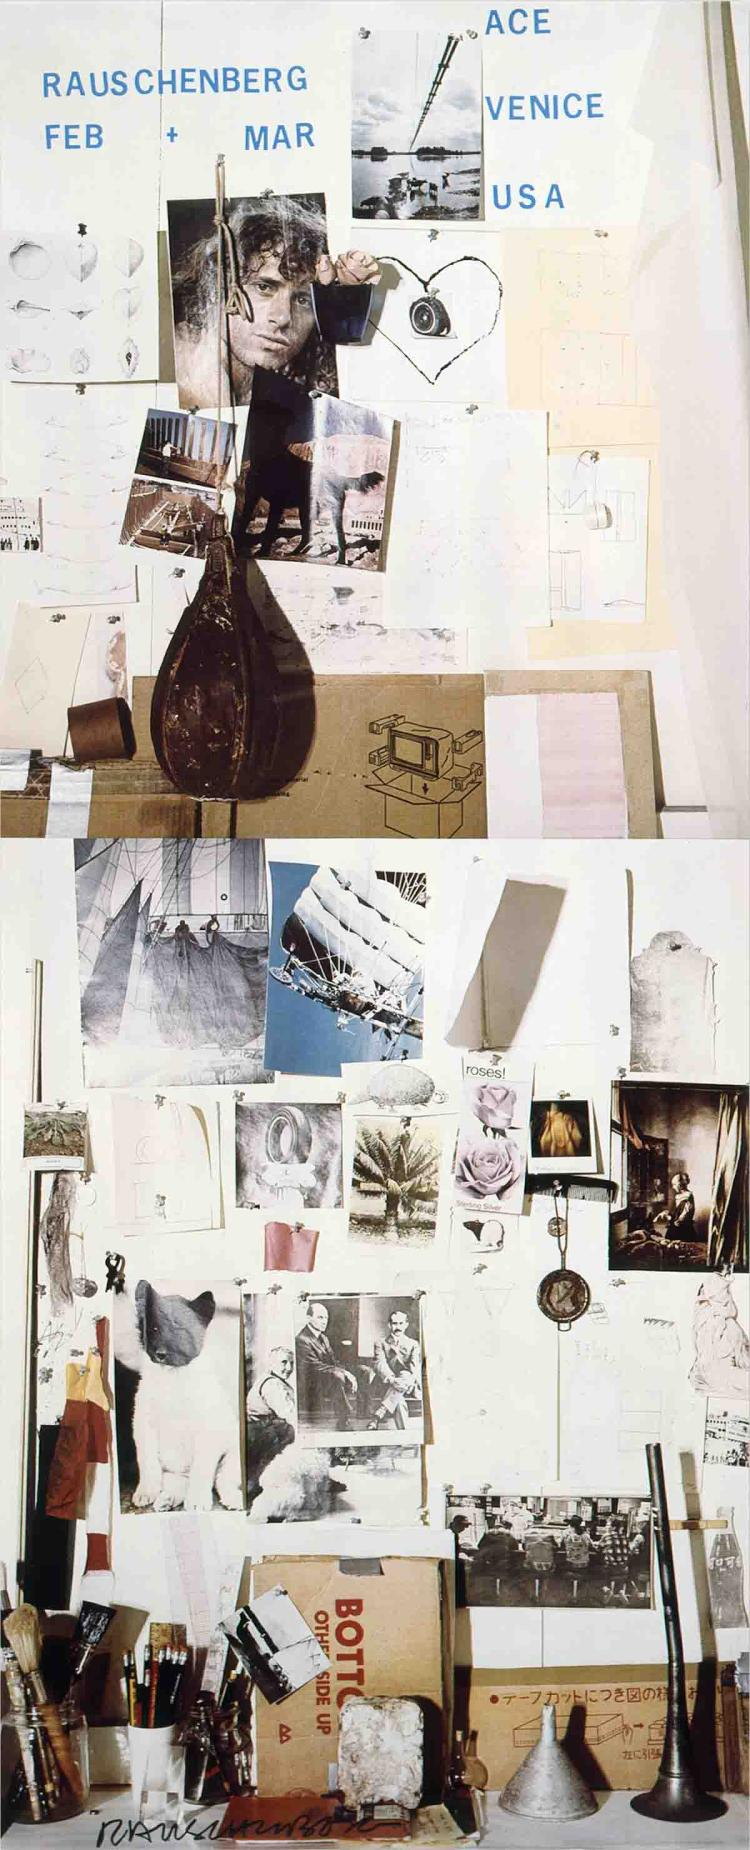 Robert Rauschenberg - Ace Gallery, Venice, California - 1978